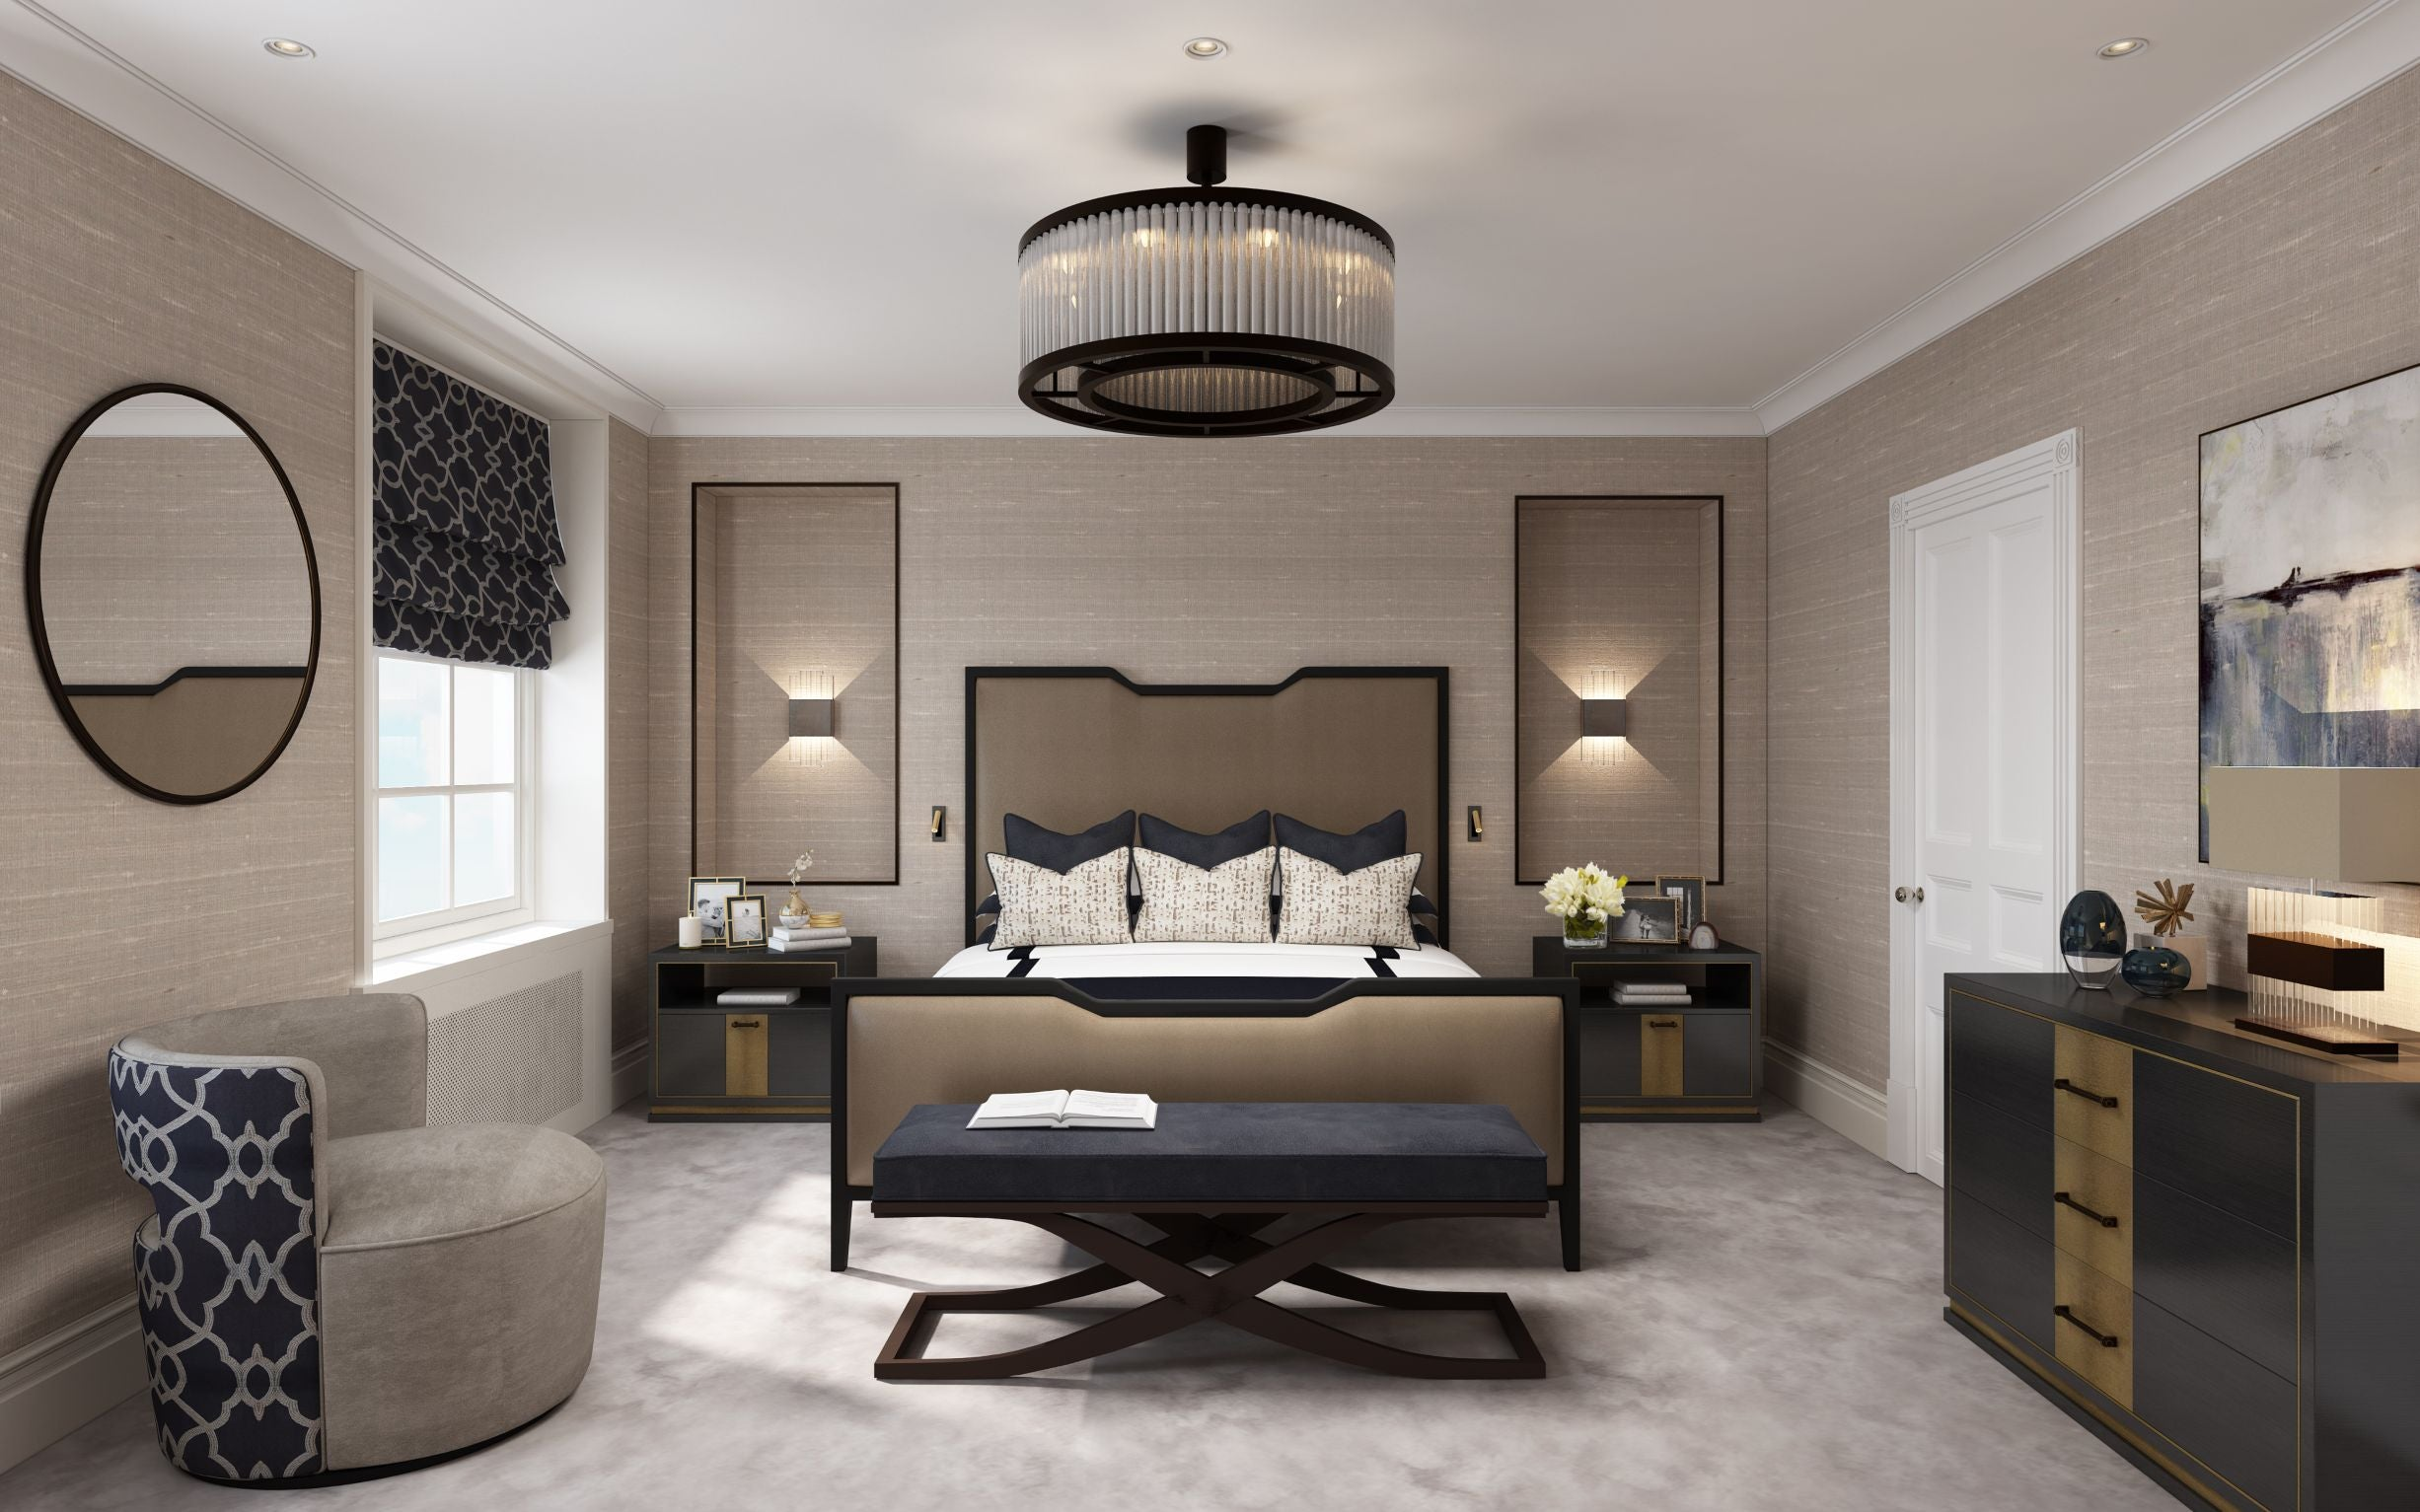 Bedroom Lighting Ideas Bedroom Lighting Tips Luxdeco